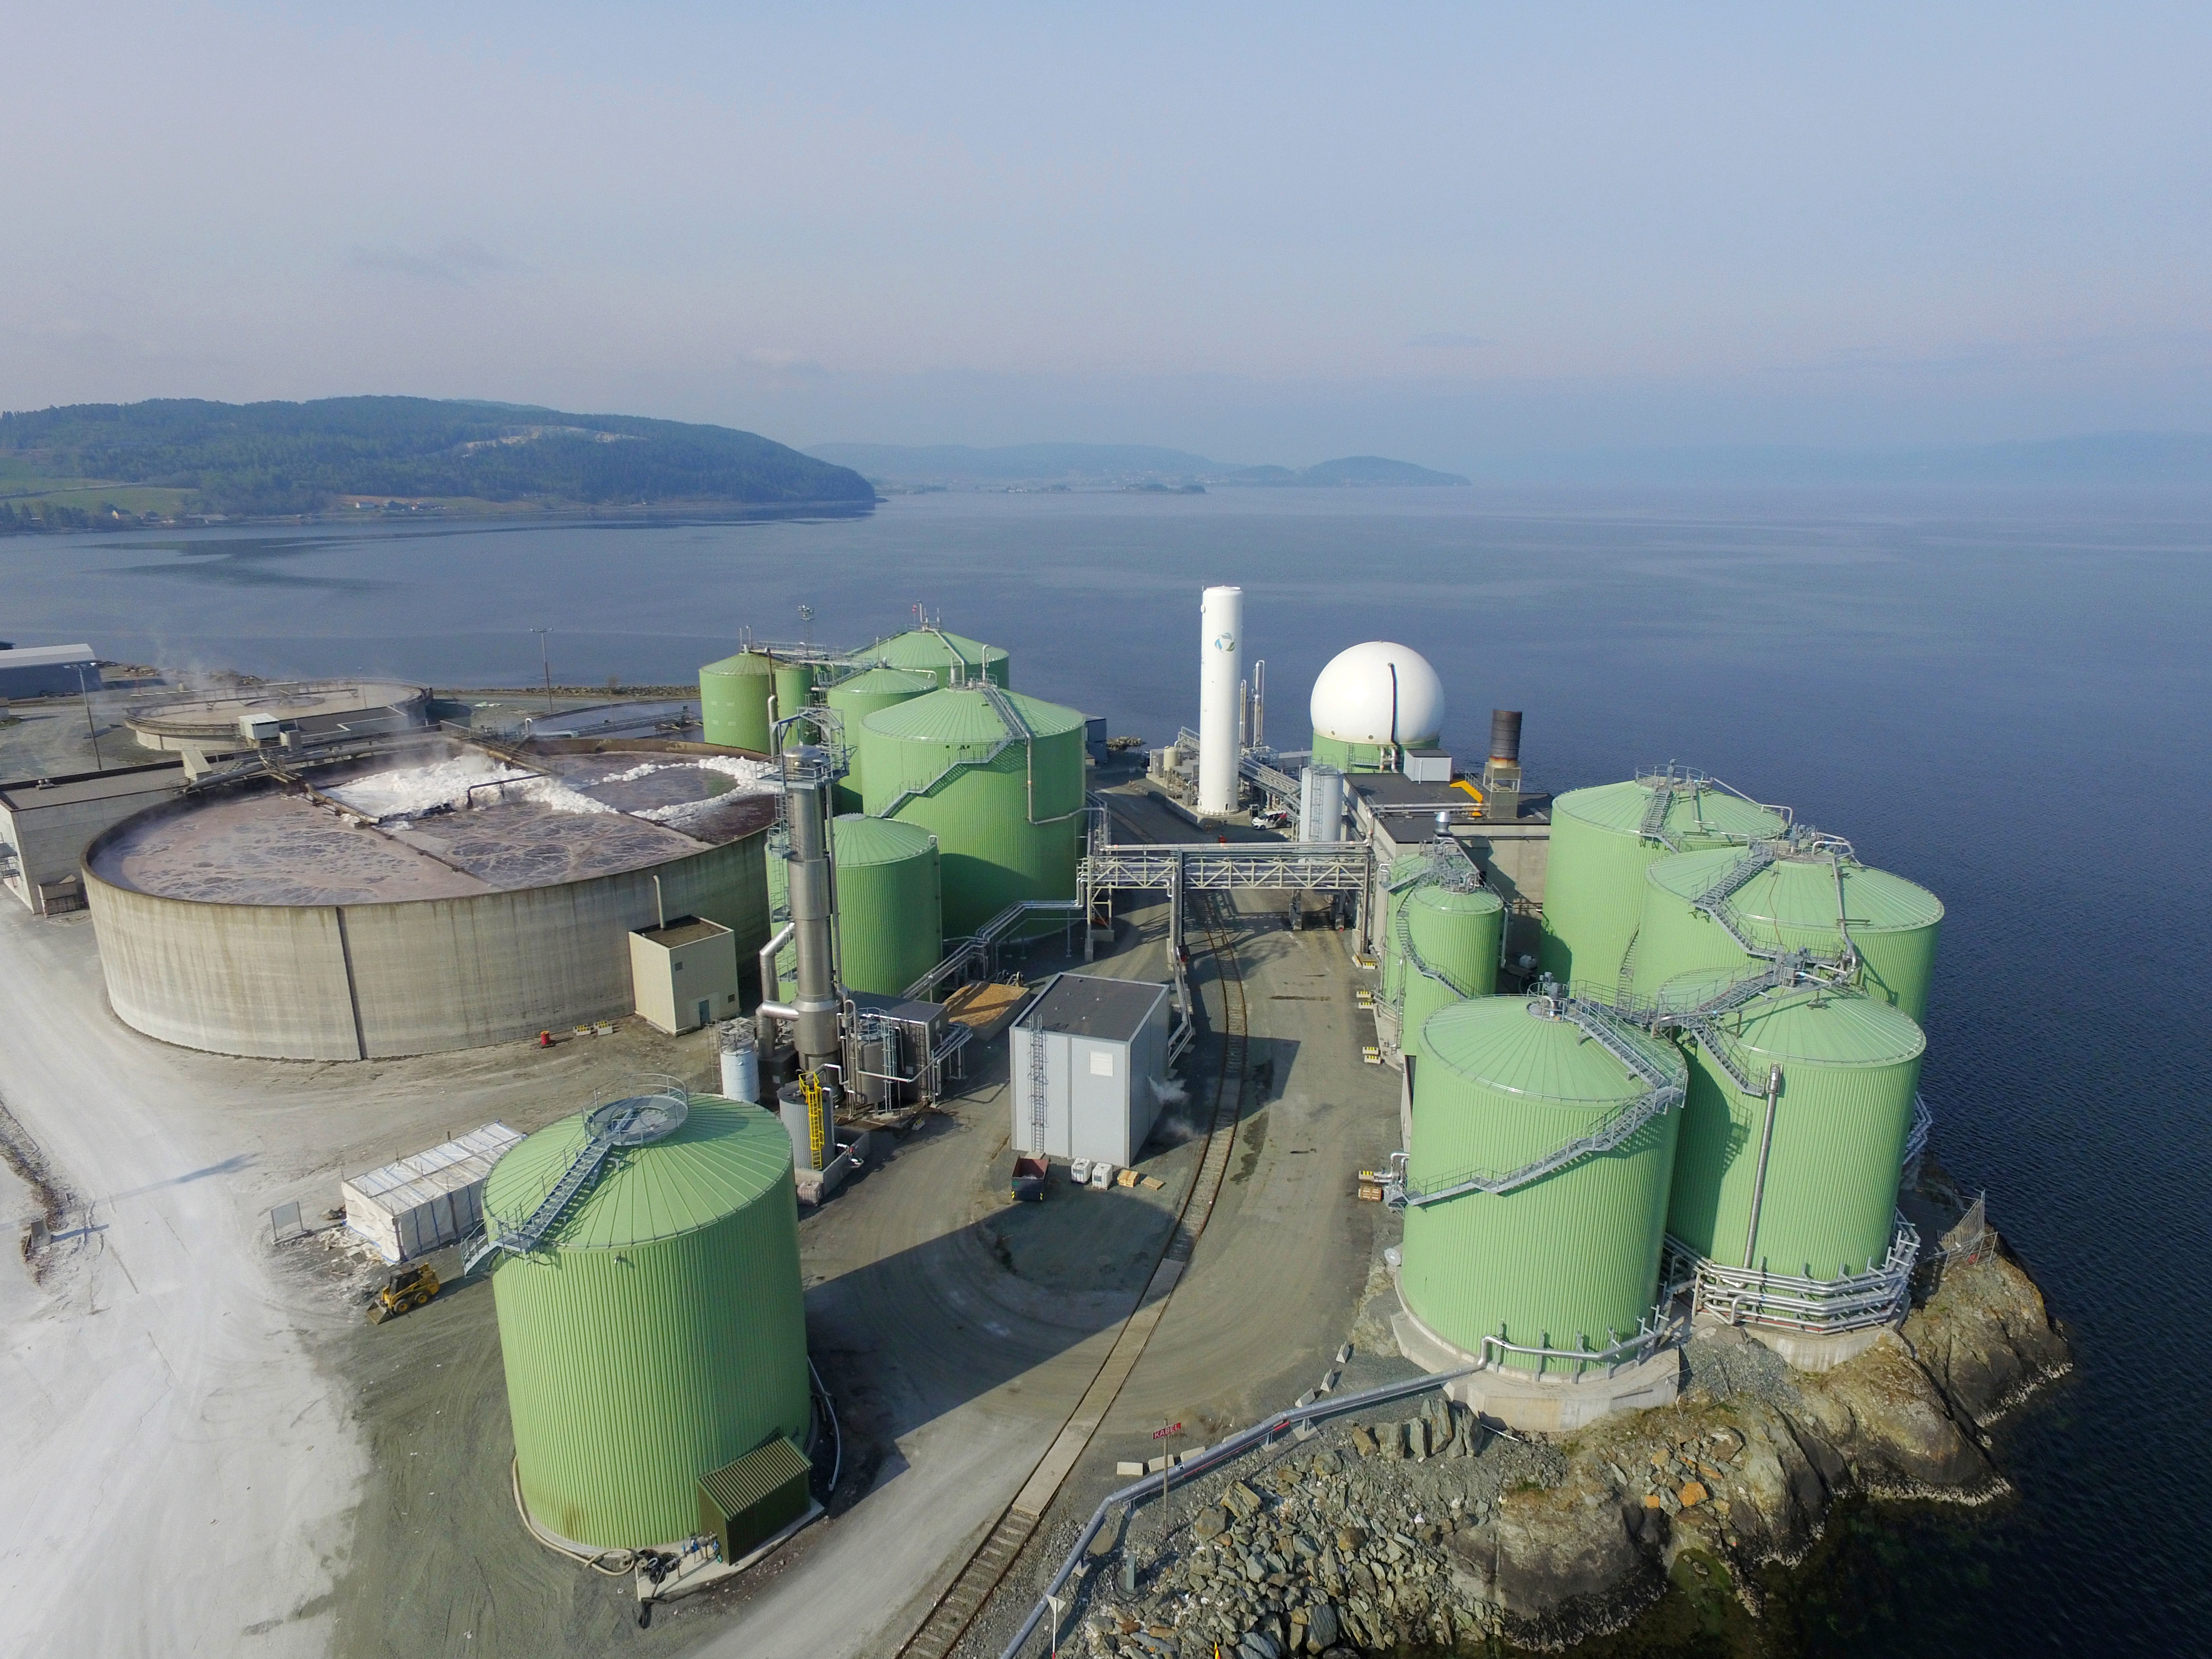 ANDION PARTNERS WITH BIOKRAFT TO EXPAND PRODUCTION AT WORLD'S LARGEST LIQUID BIOGAS FUEL FACTORY